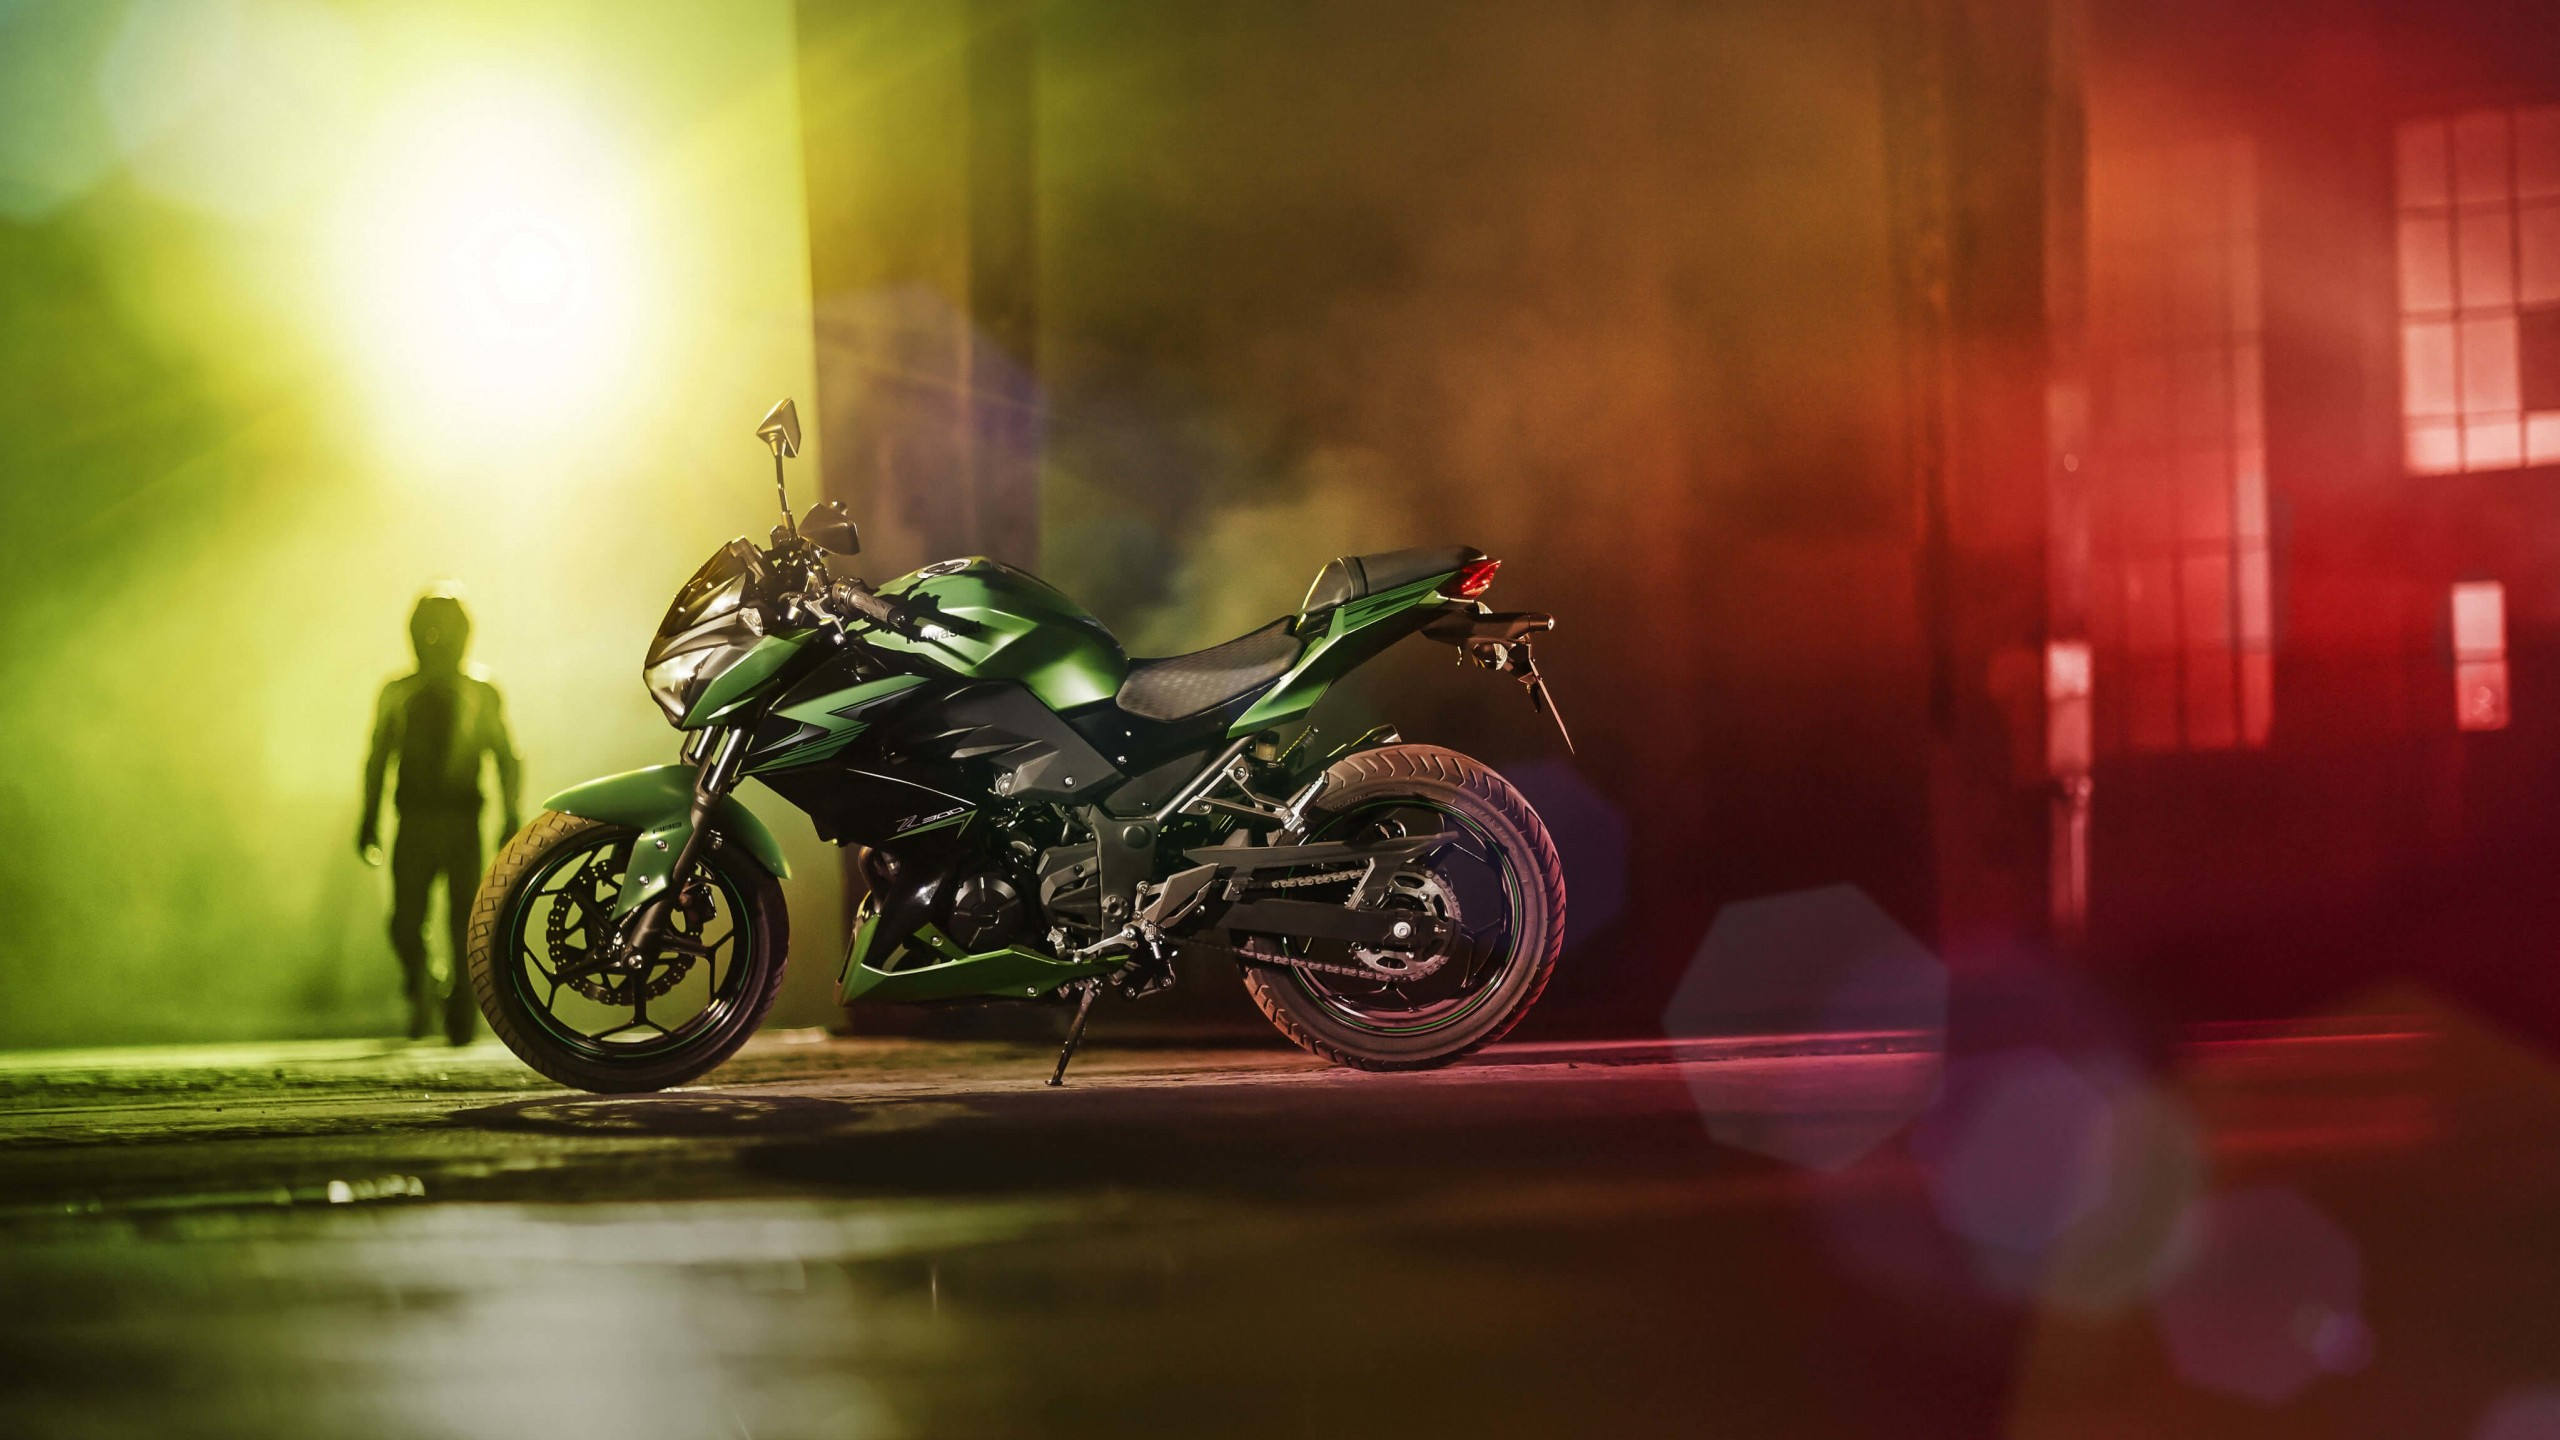 Kawasaki Z300 Wallpaper for Desktop 2560x1440